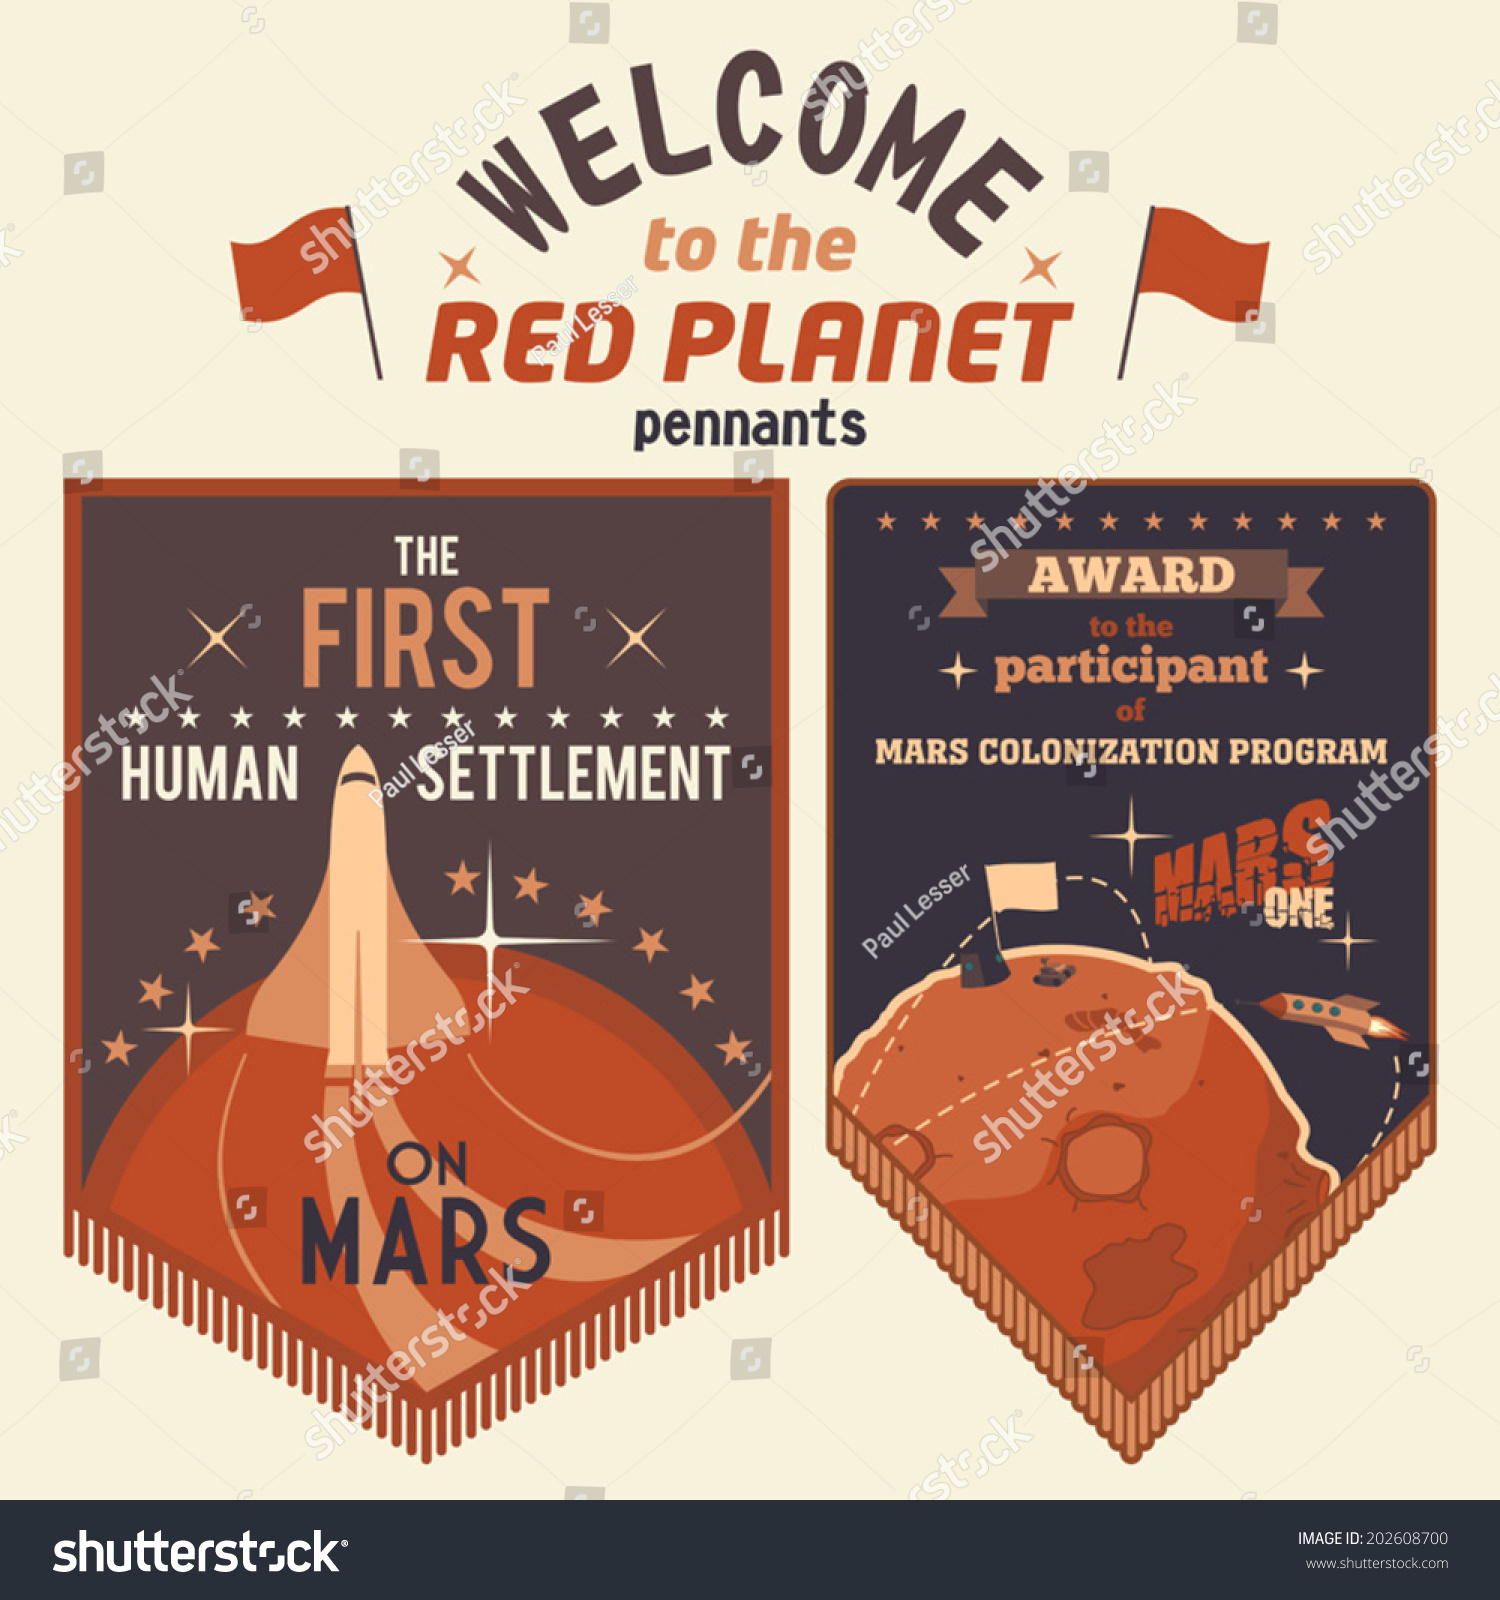 welcome to the planet mars - photo #40